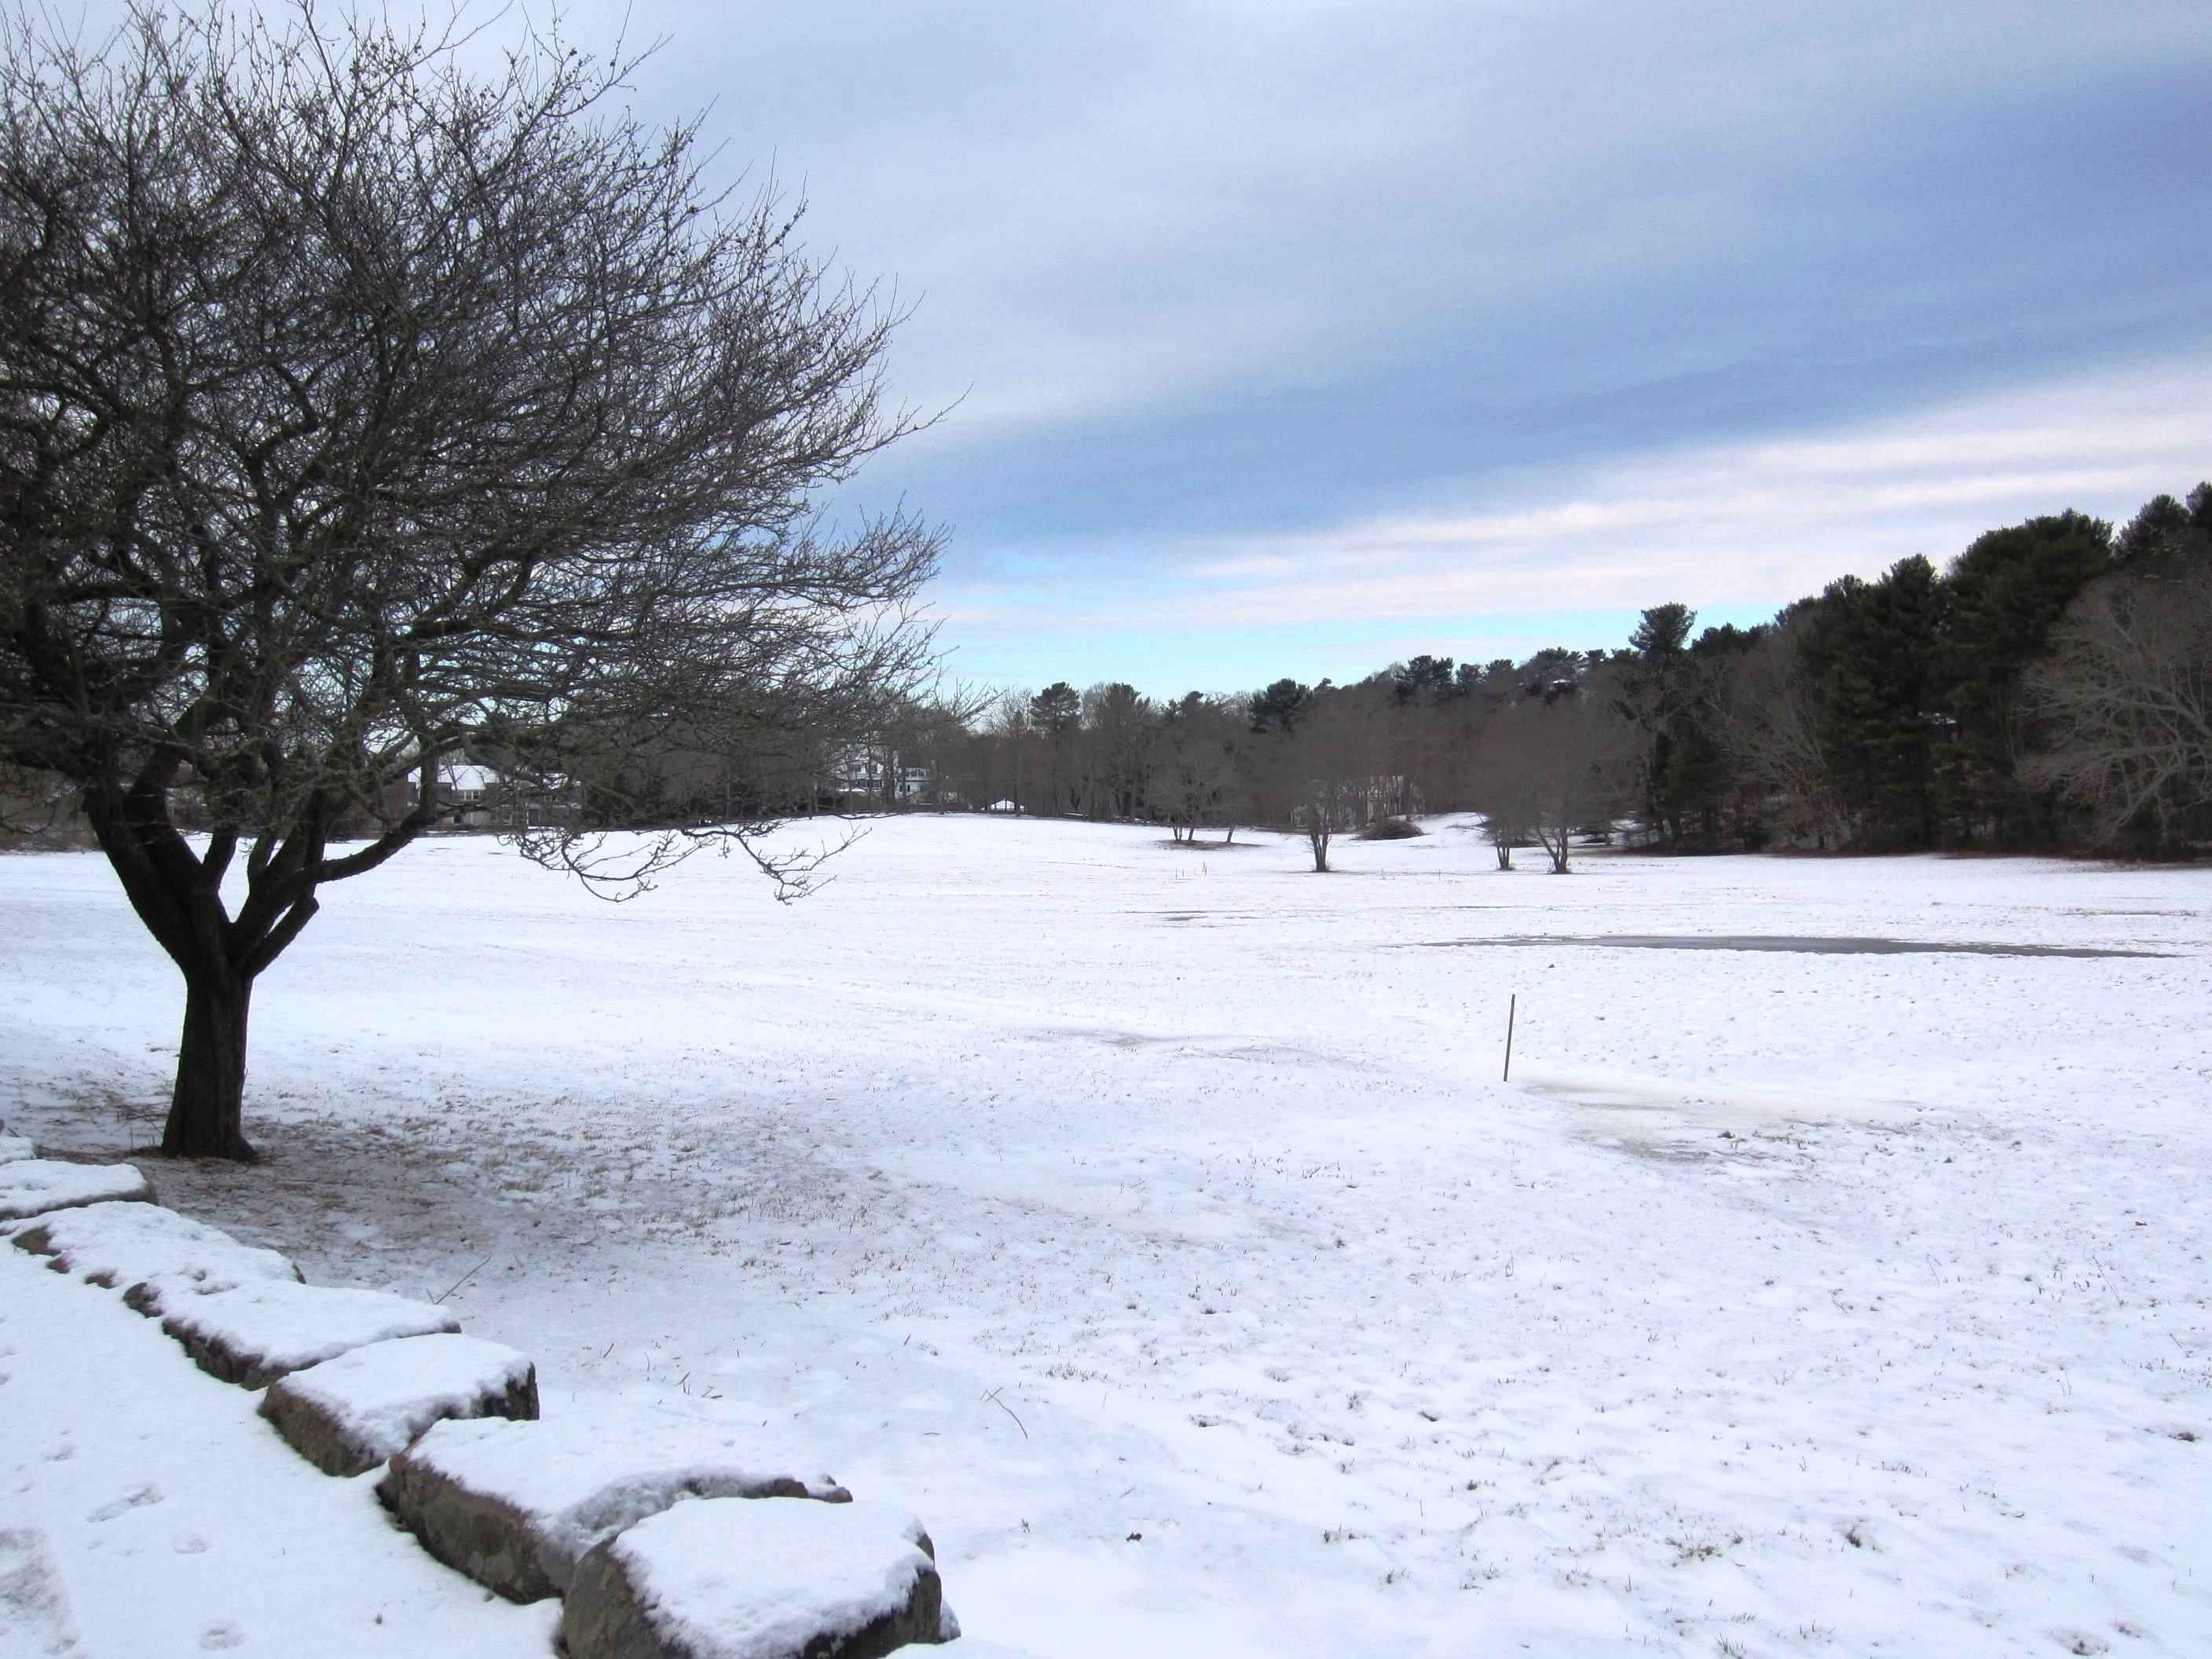 Open space with snow